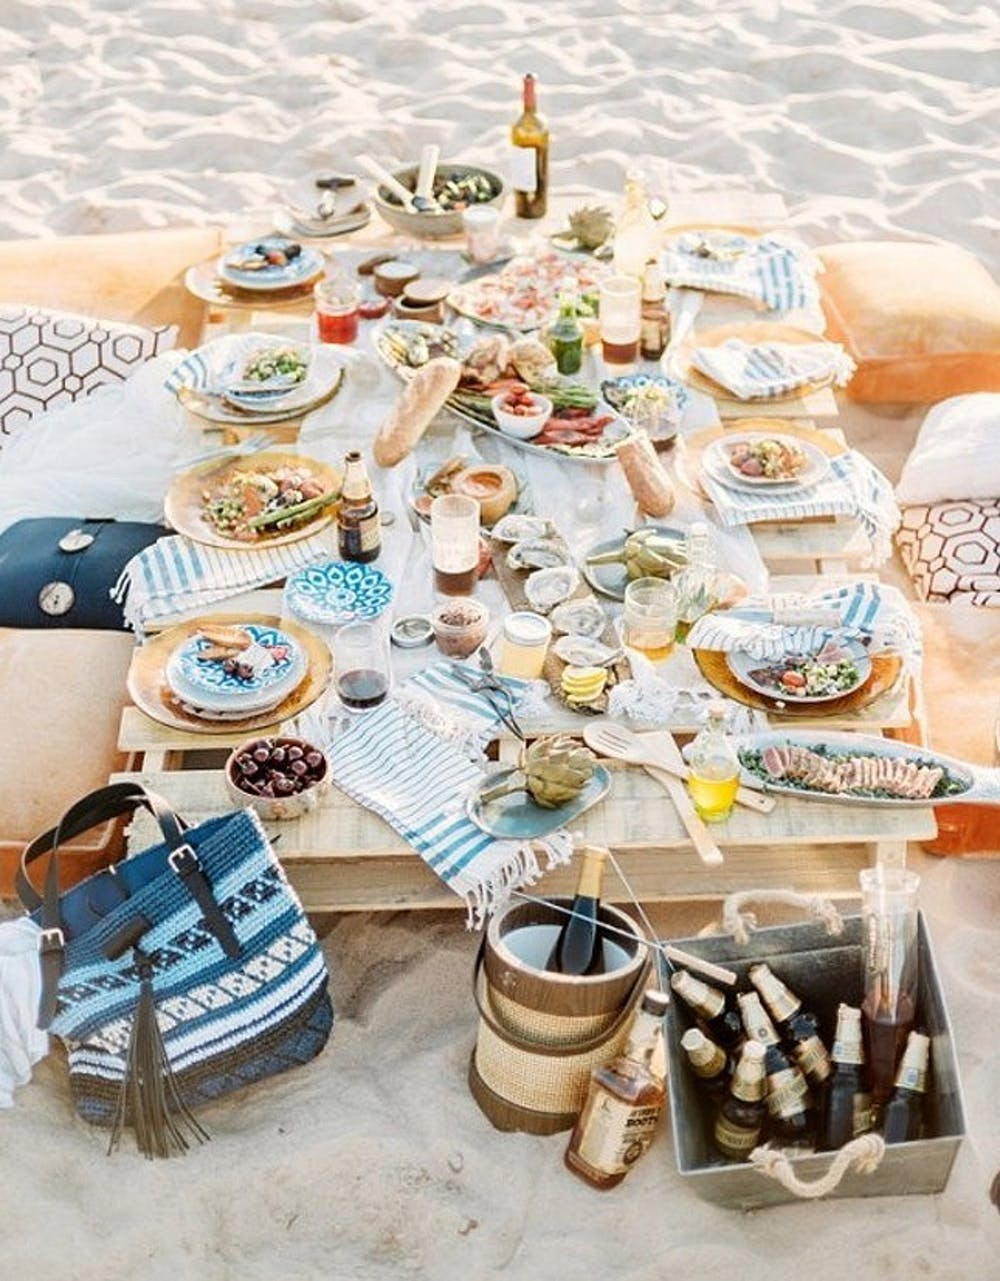 Tips to help bring your rehearsal dinner plans together: A Casual Beach Side Picnic